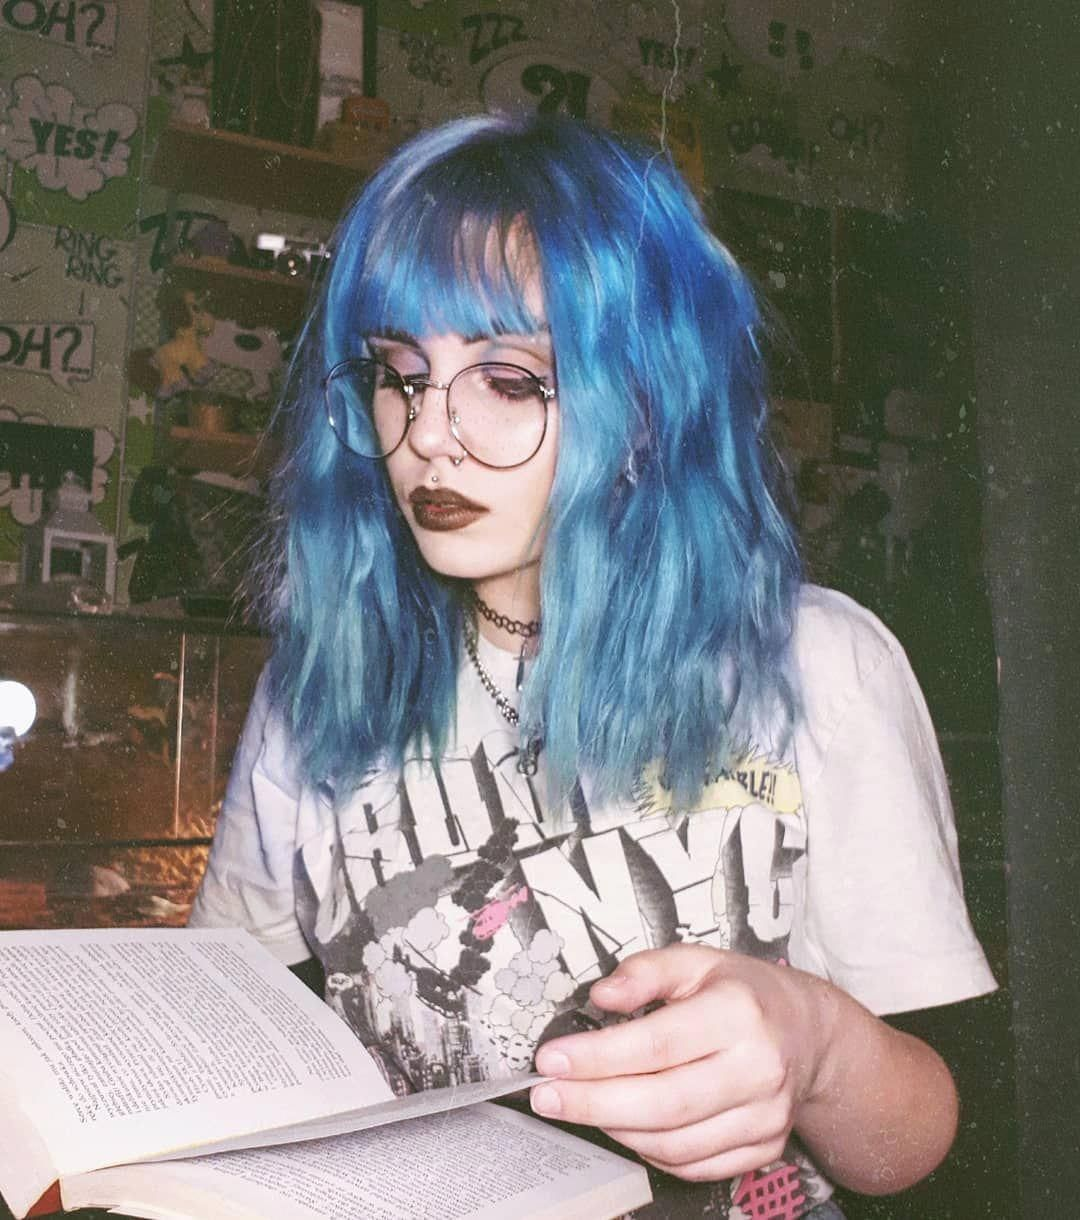 Pin By Erinnnnn On Piercings With Images Blue Hair Aesthetic Aesthetic Hair Short Blue Hair